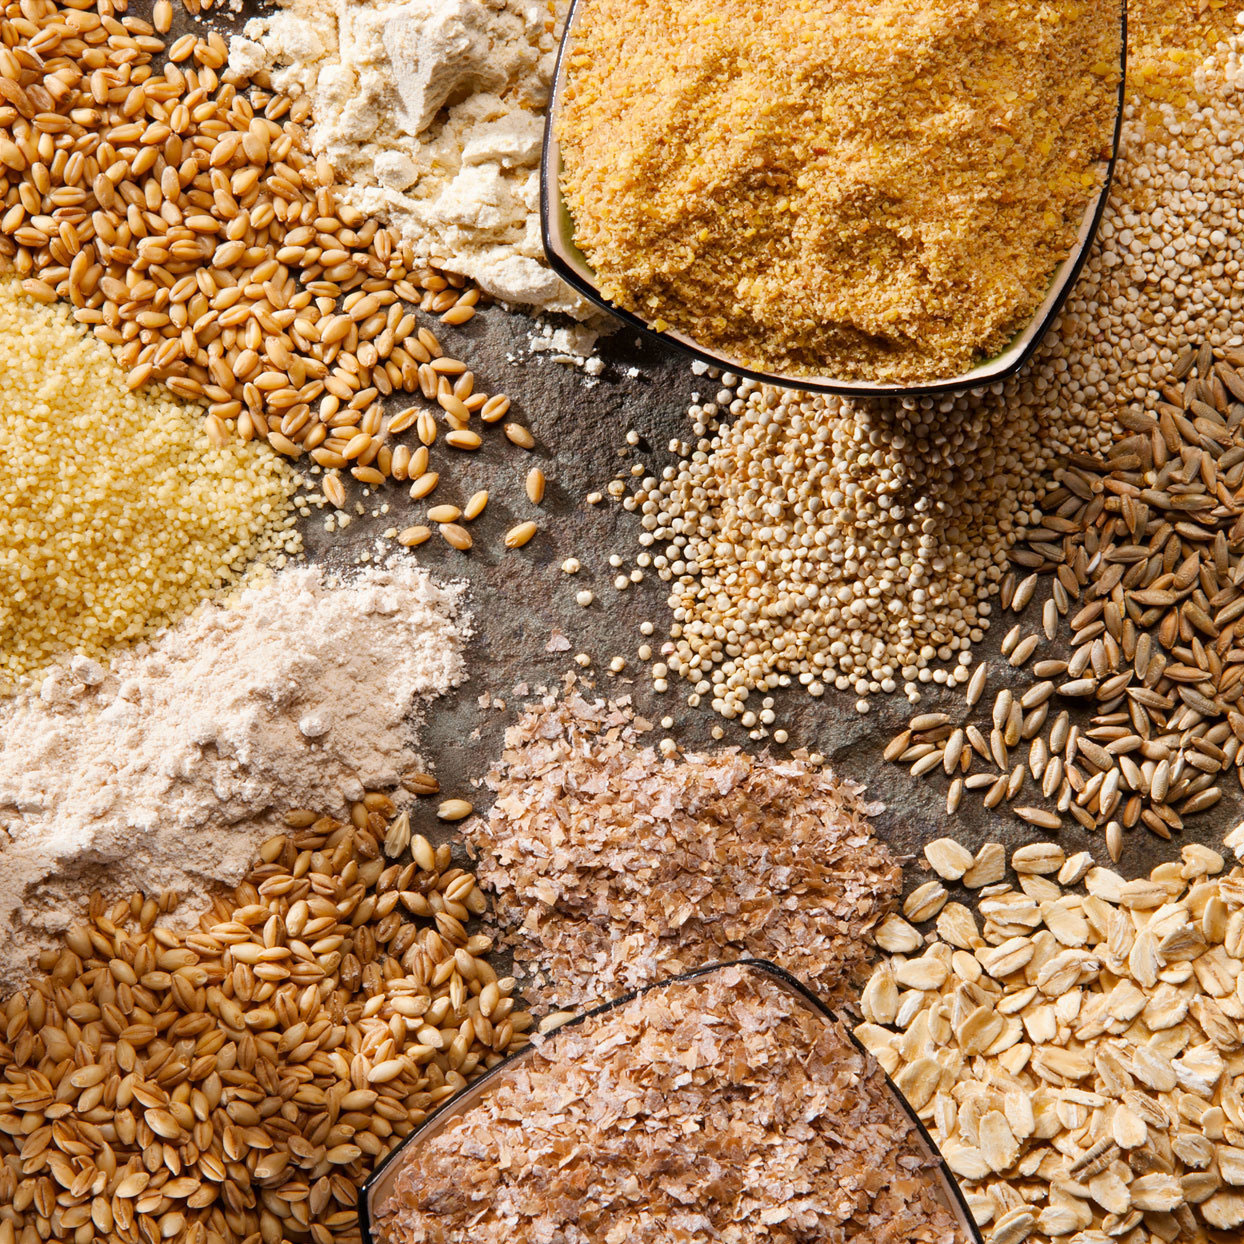 8 Gluten-Free Grains You Should Add to Your Diet